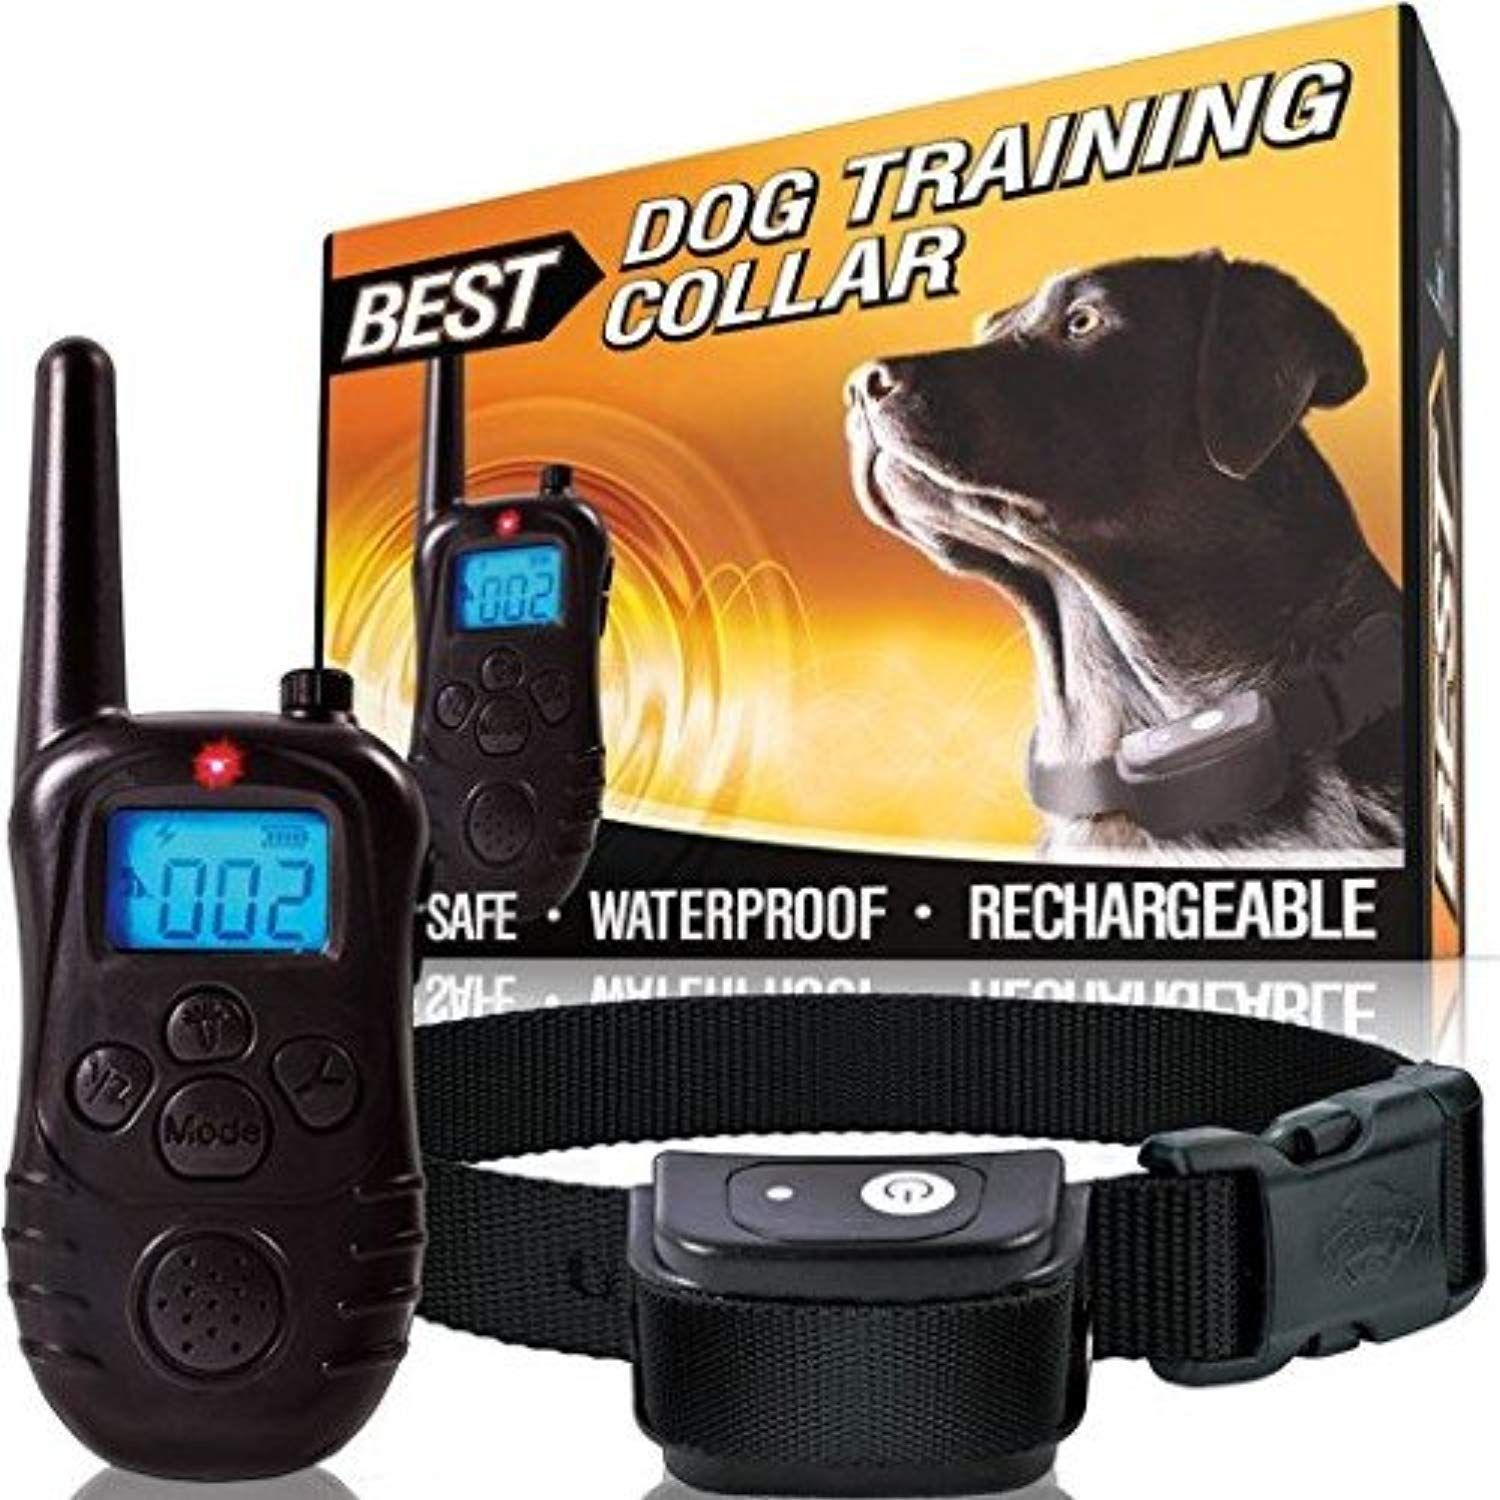 Best Low Voltage Weatherproof Pet Training Collar With Remote Lcd